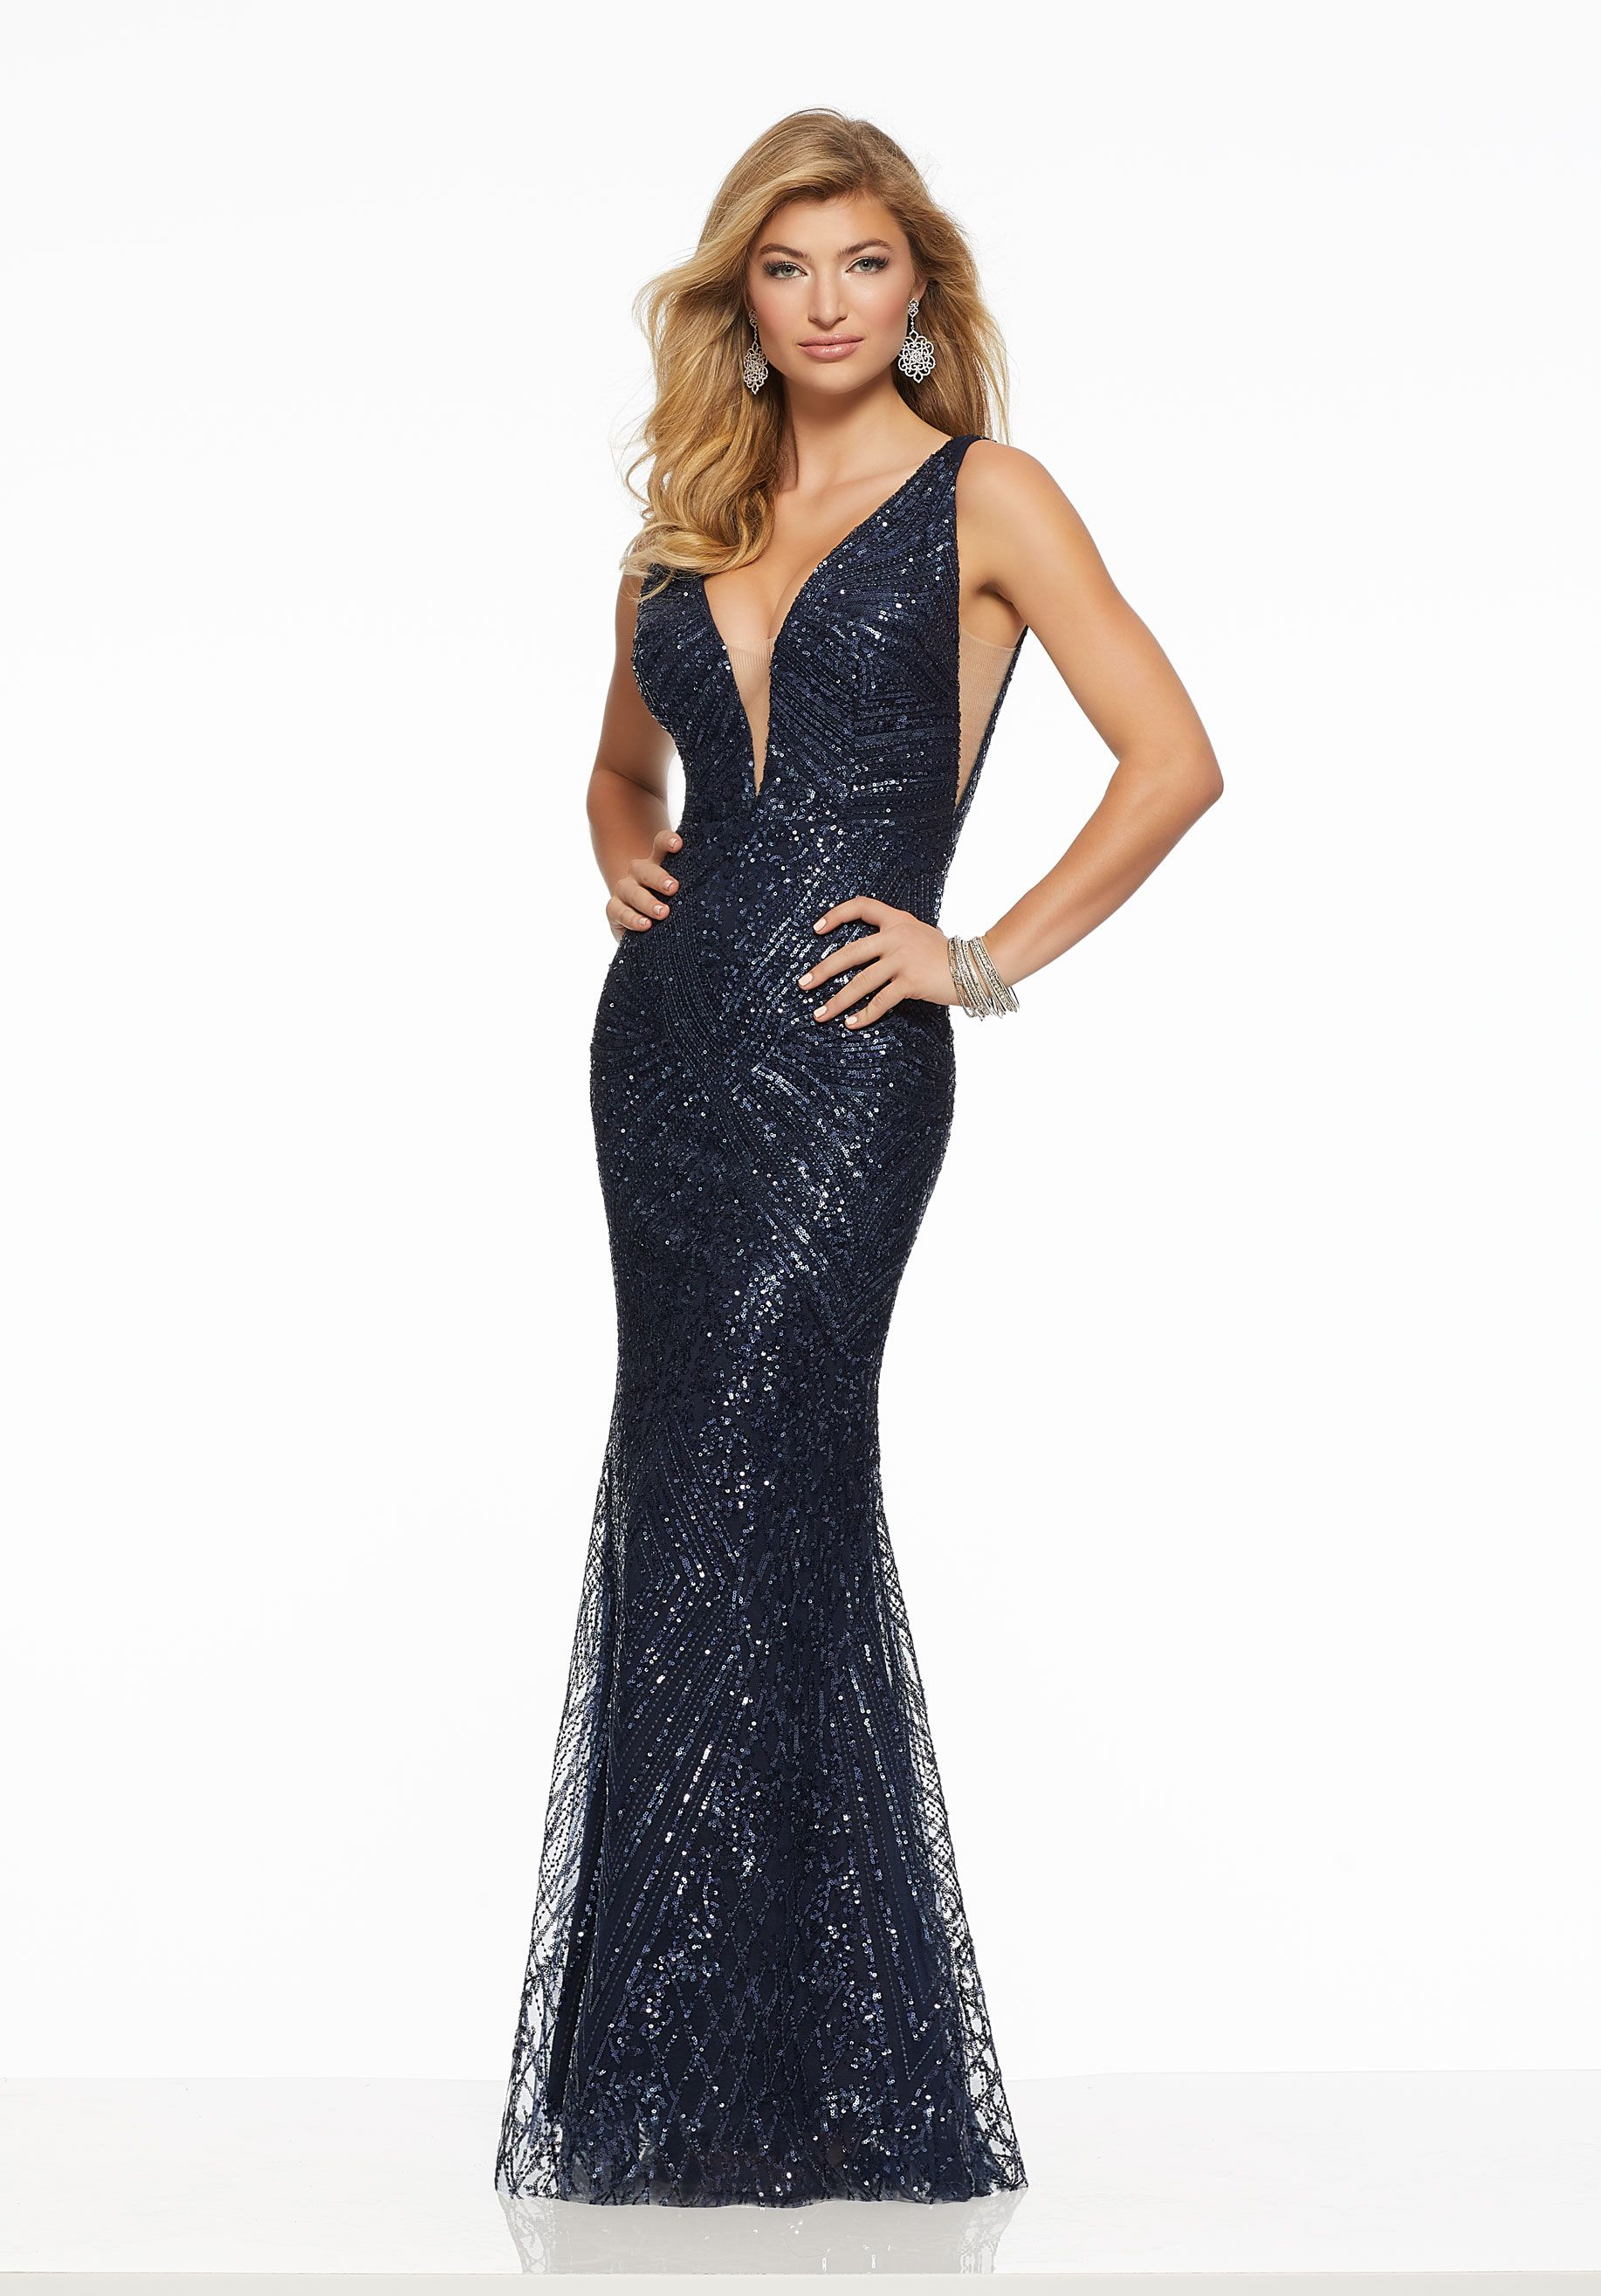 Mori Lee Prom available at Spotlight Formal!